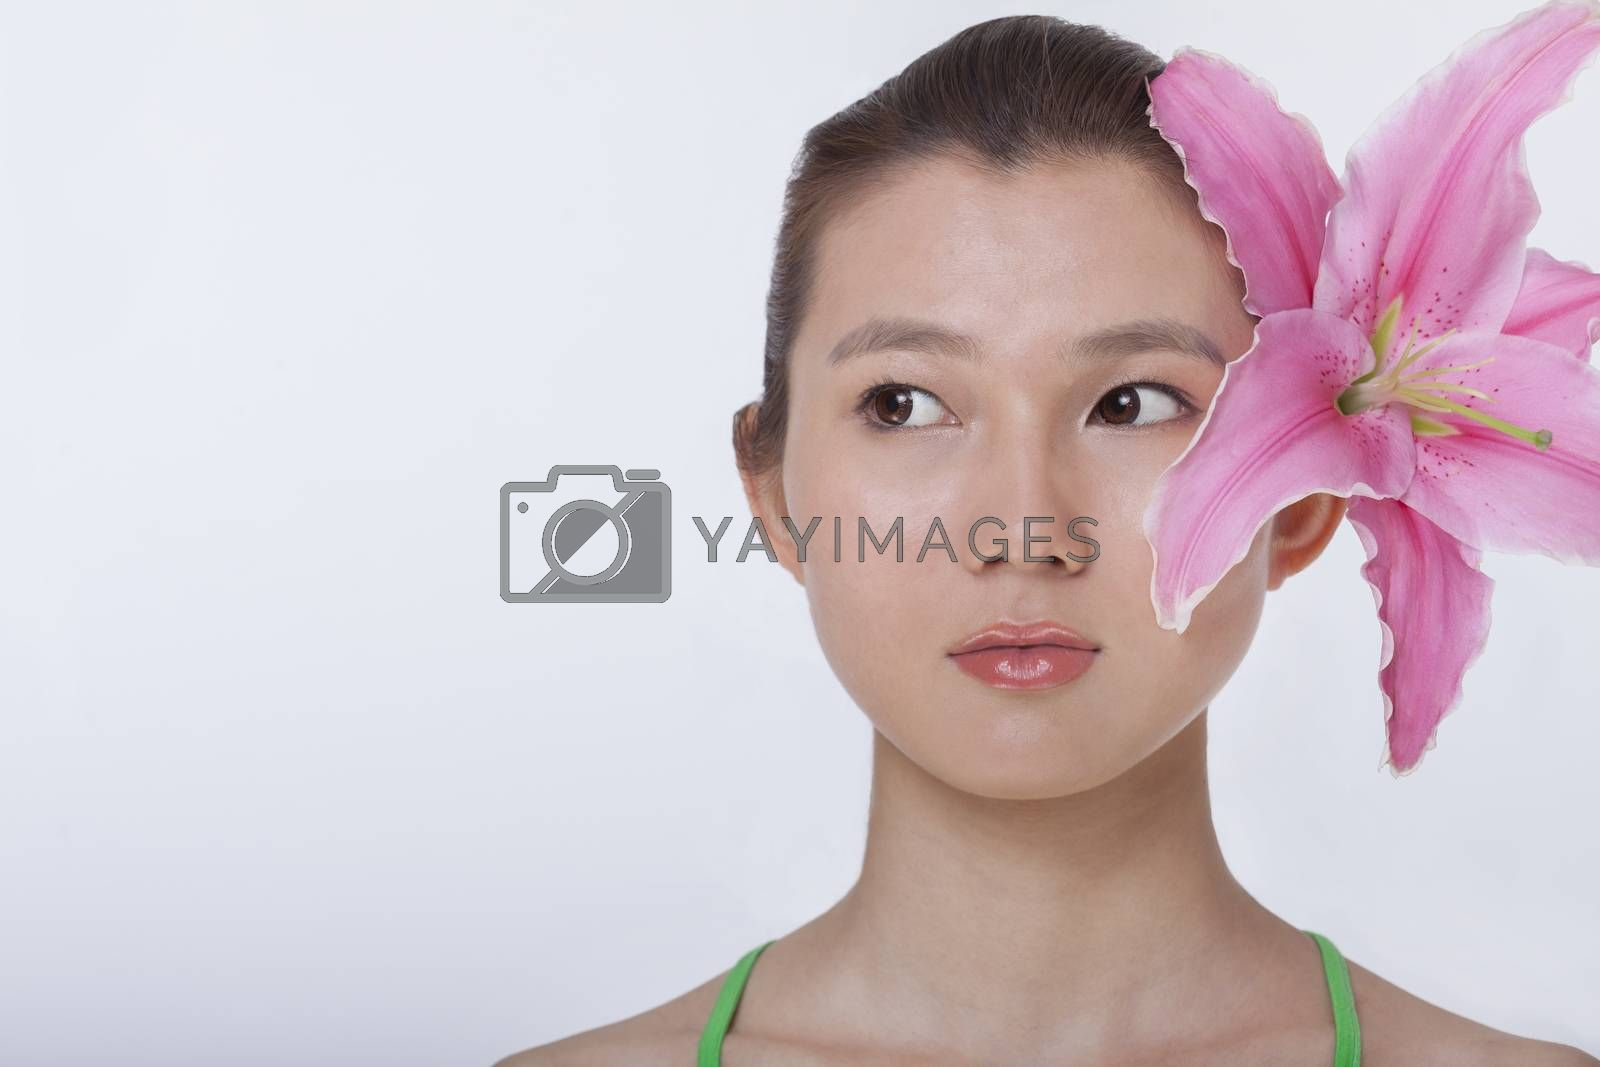 Portrait of young beautiful woman with a large pink flower tucked behind her ear, studio shot